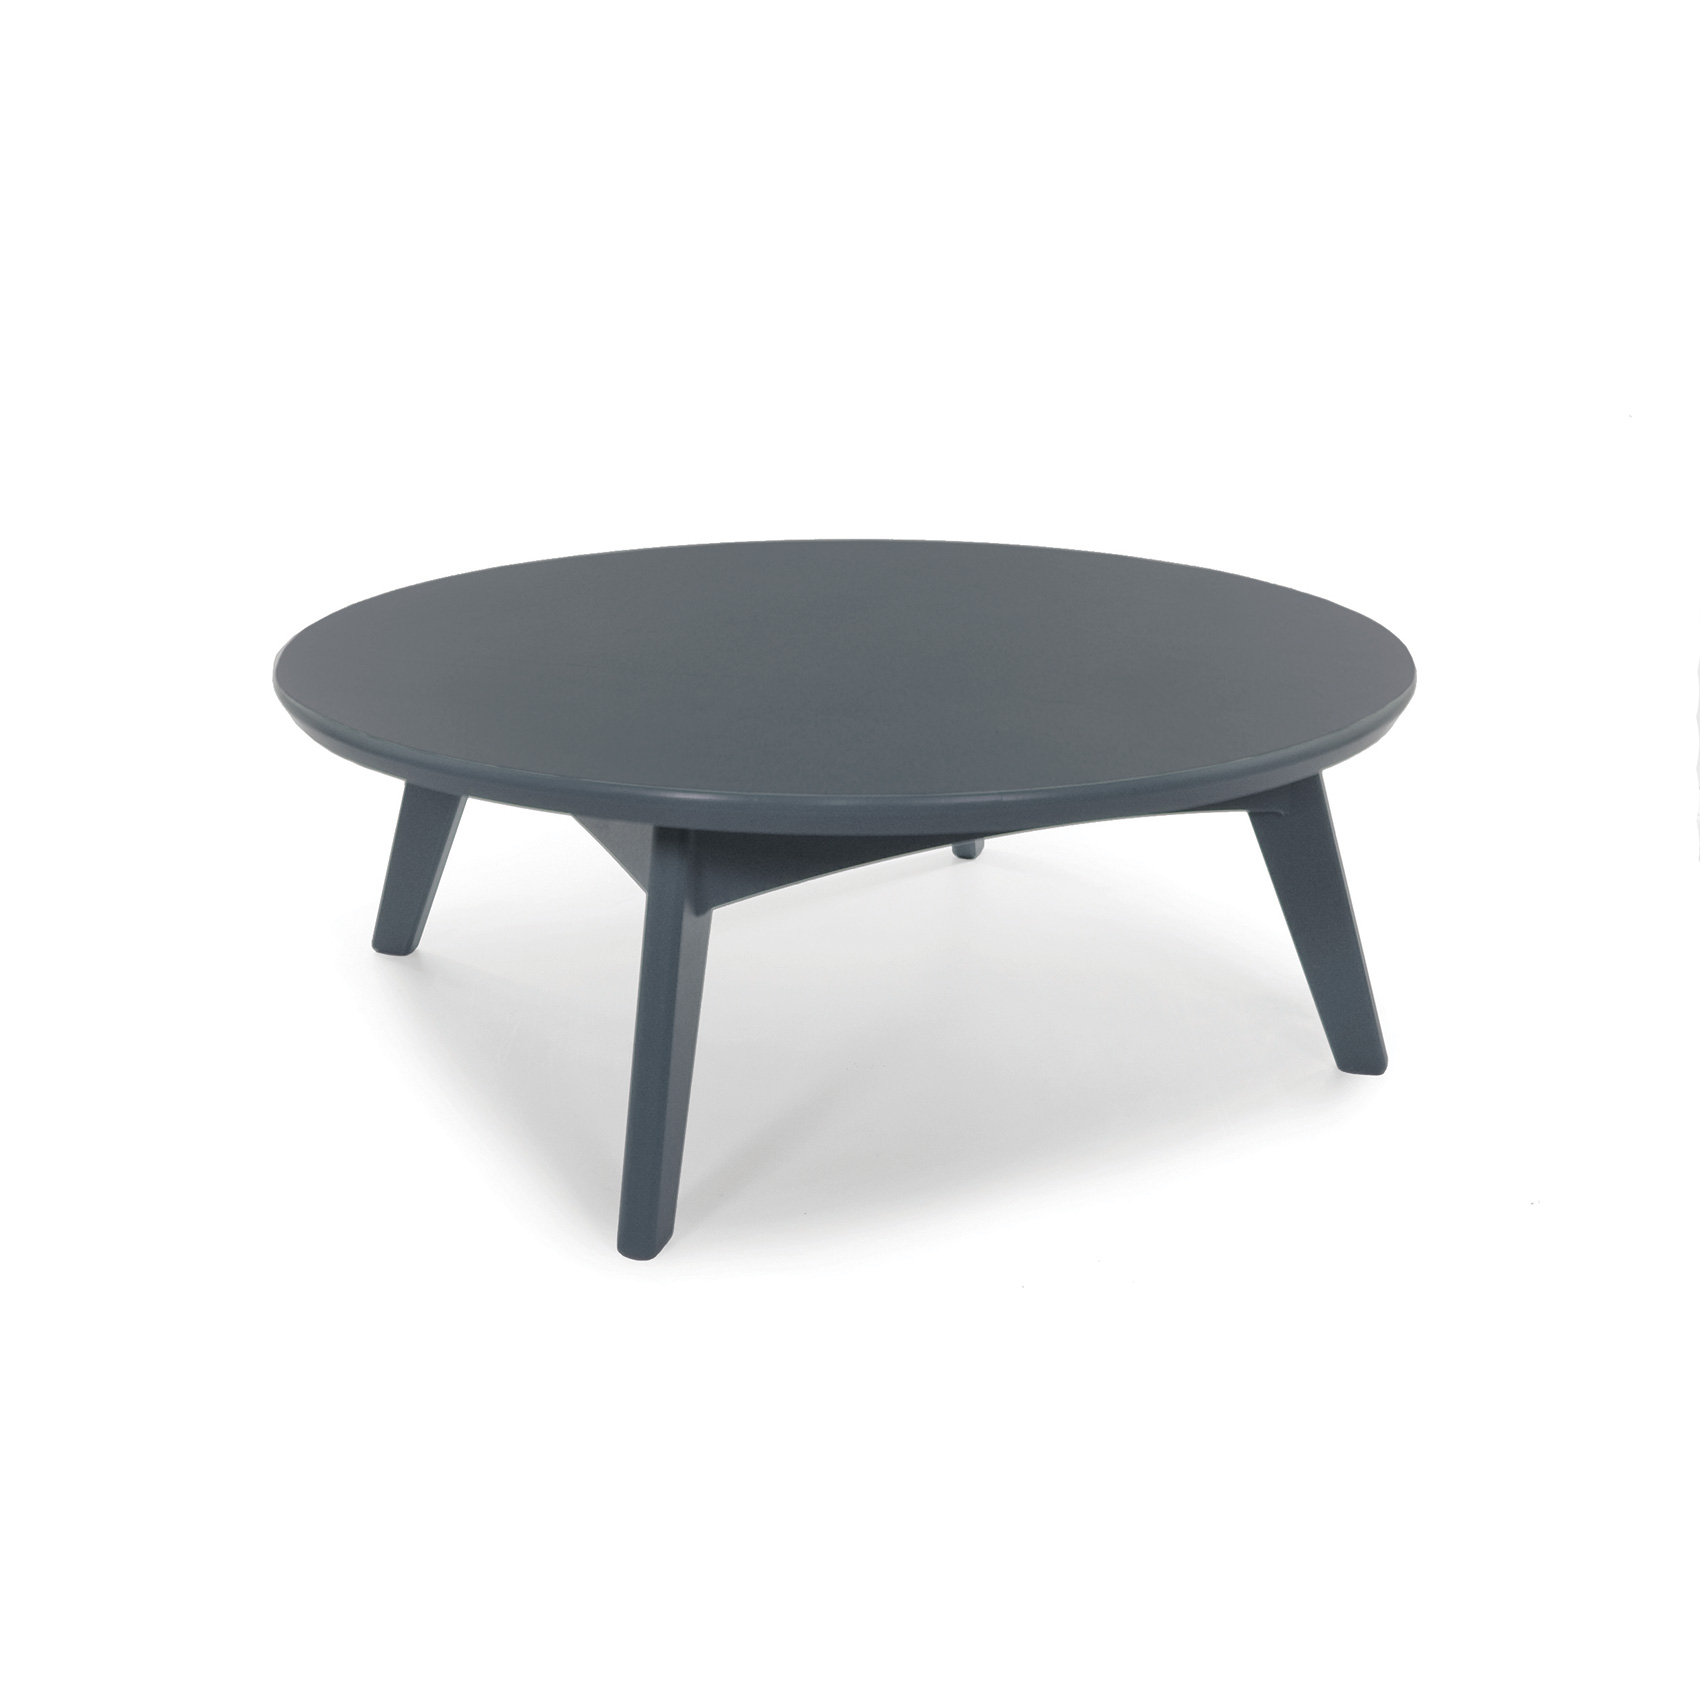 Modern Round Outdoor Cocktail Table Loll Designs intended for dimensions 1700 X 1700